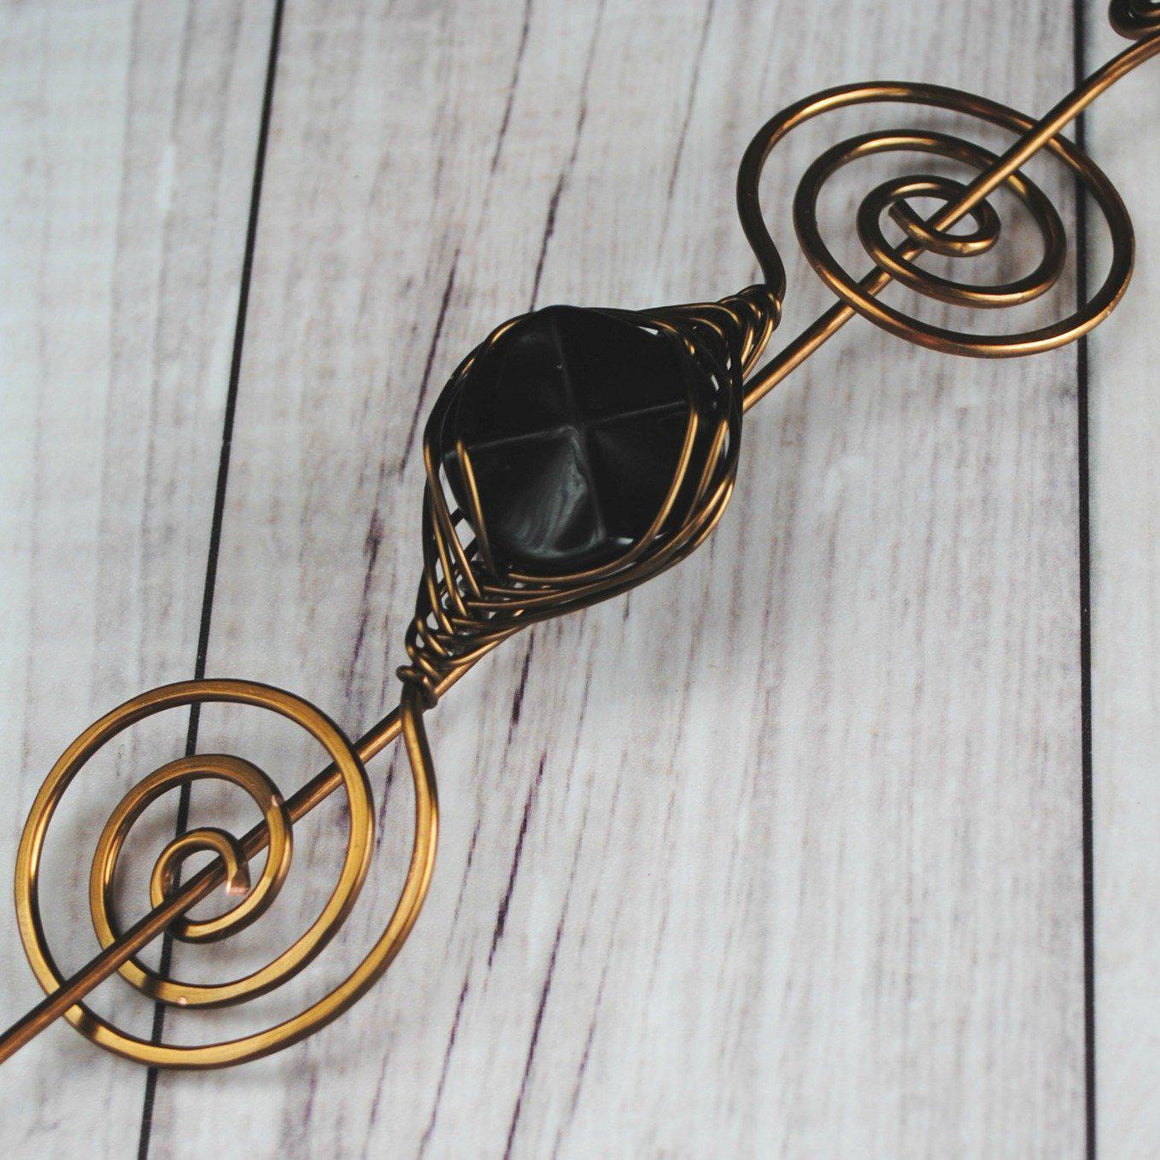 Shawl Pin, Black Glass Shawl Pin - Large Bronze - Limited Edition - Crafty Flutterby Creations